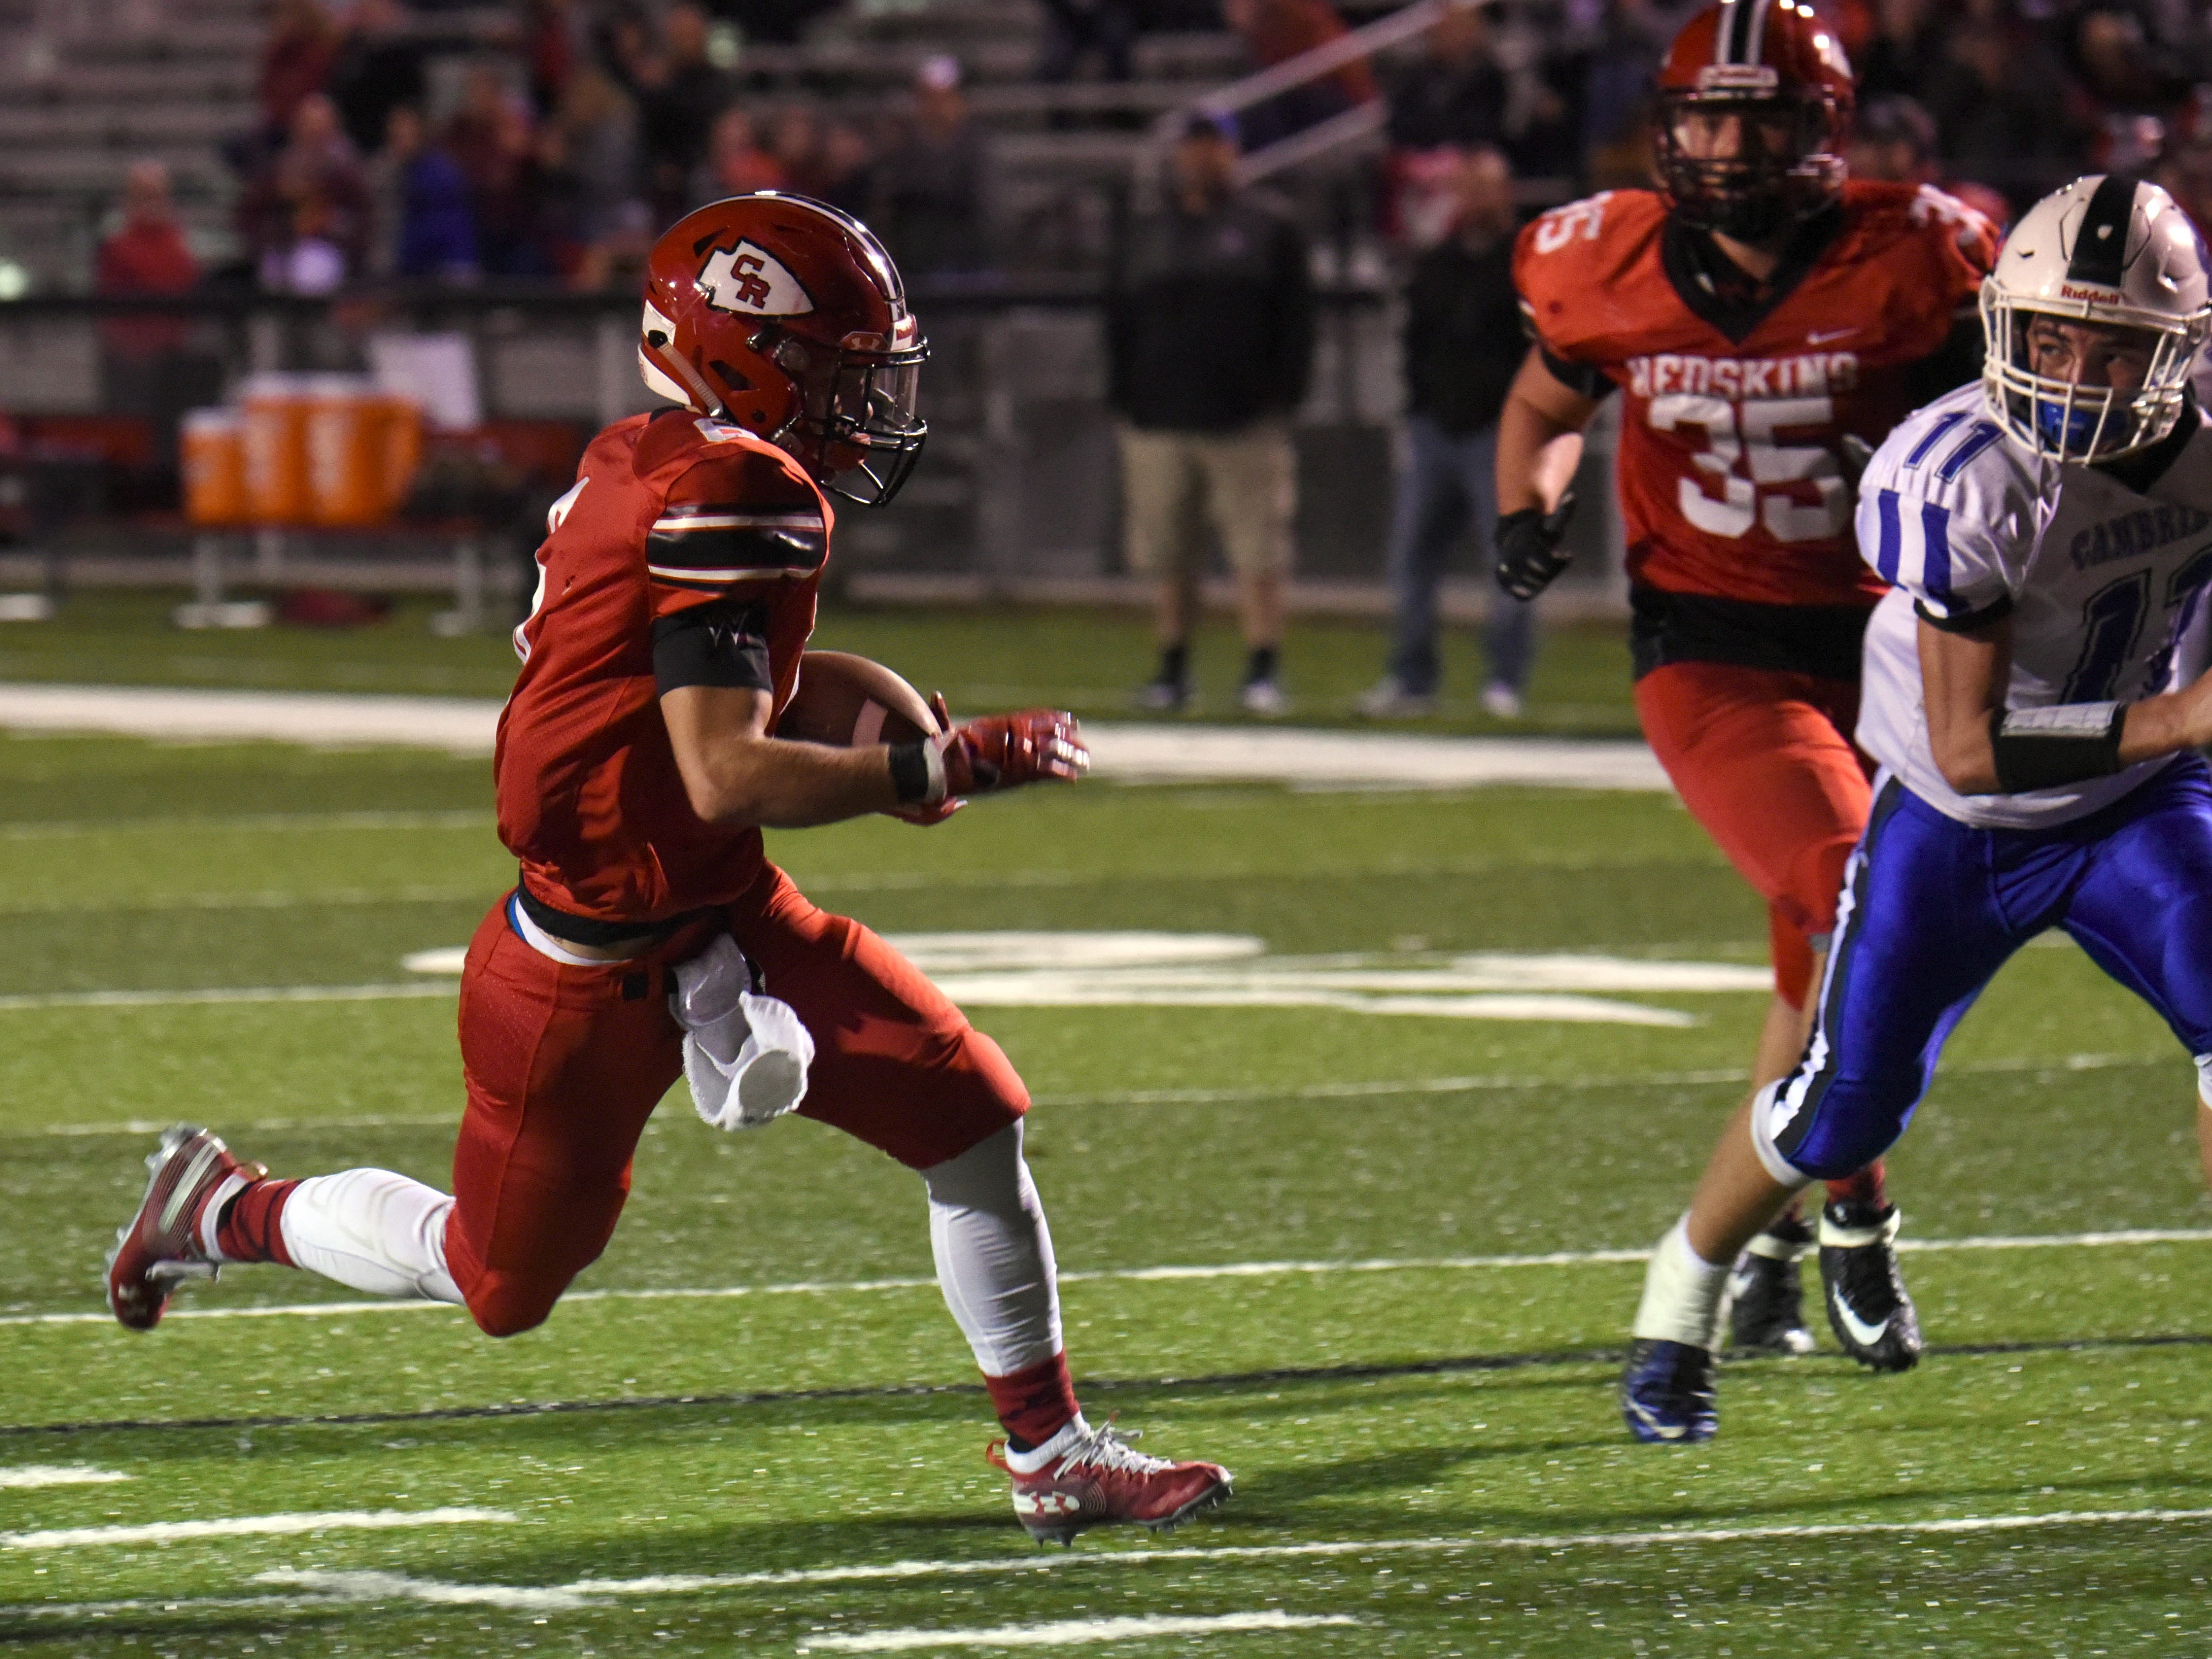 Coshocton senior Andrew Kittell carries the ball for a touchdown in the second quarter against Cambridge during their homecoming game on Friday, Oct. 12, 2018. Coshocton lost 33-22.